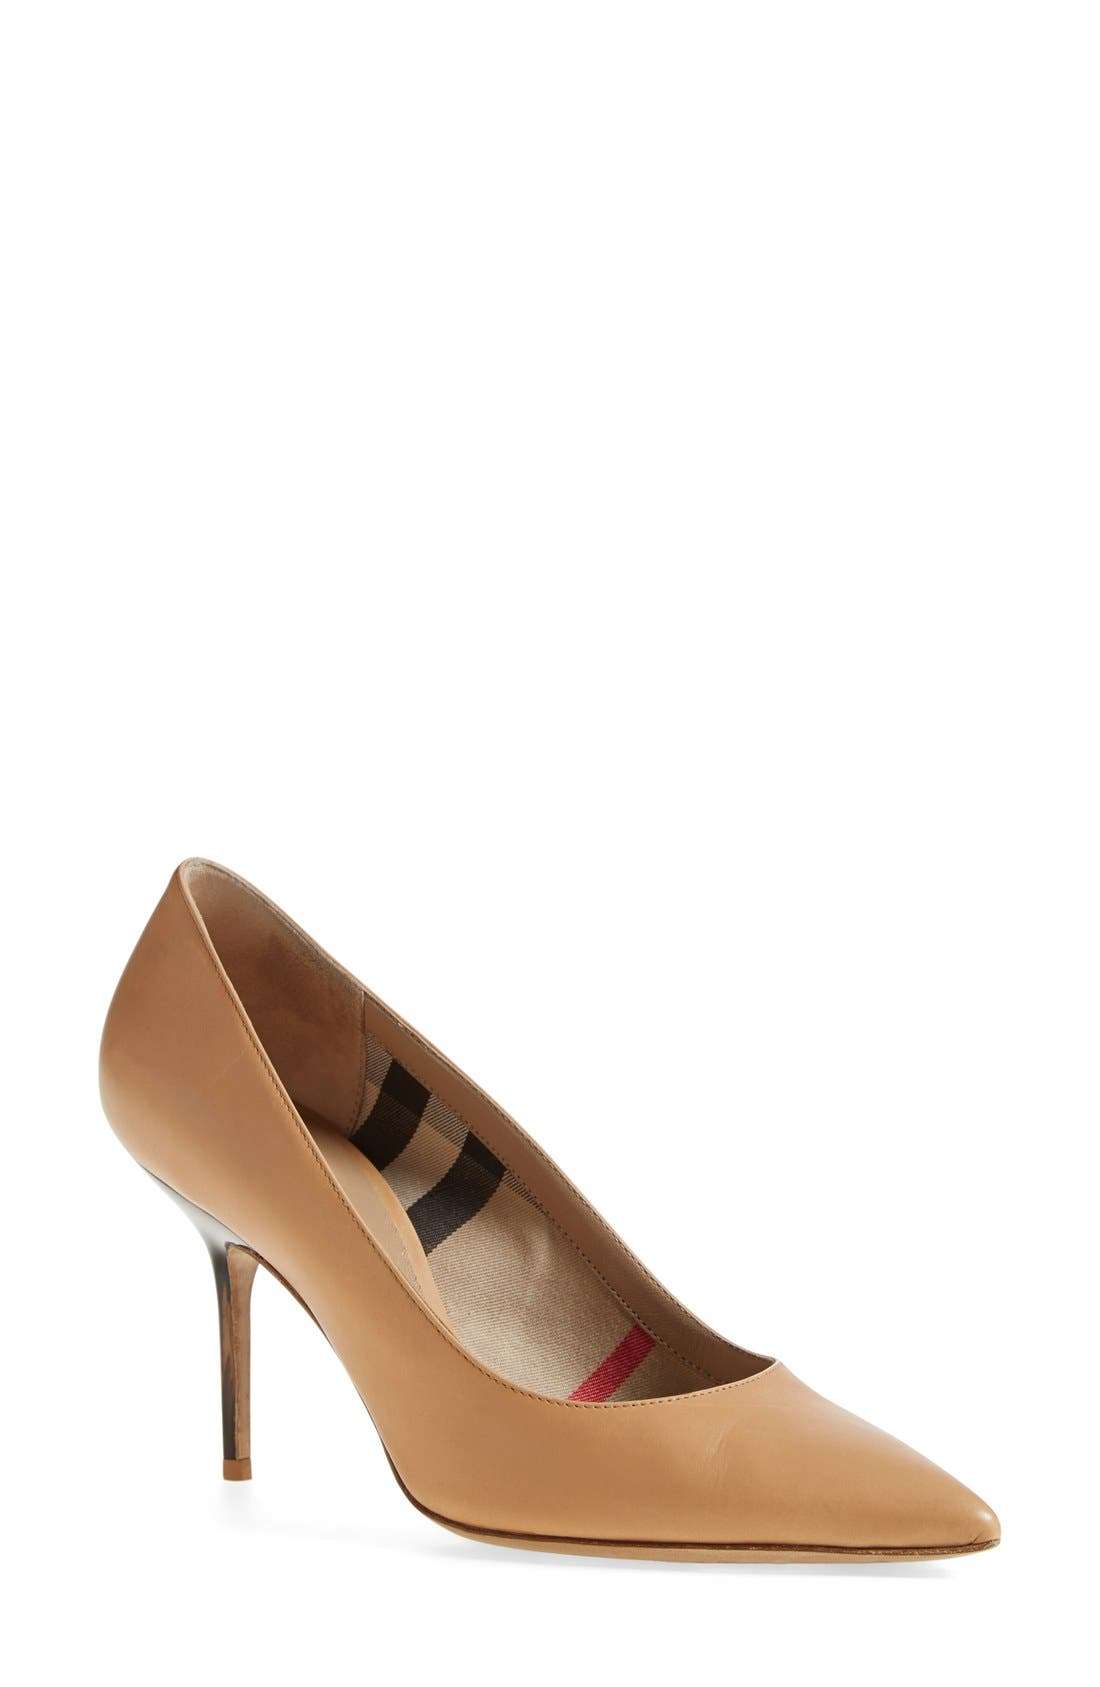 Burberry 'Mawdesley' Pointy Toe Pump (Women)